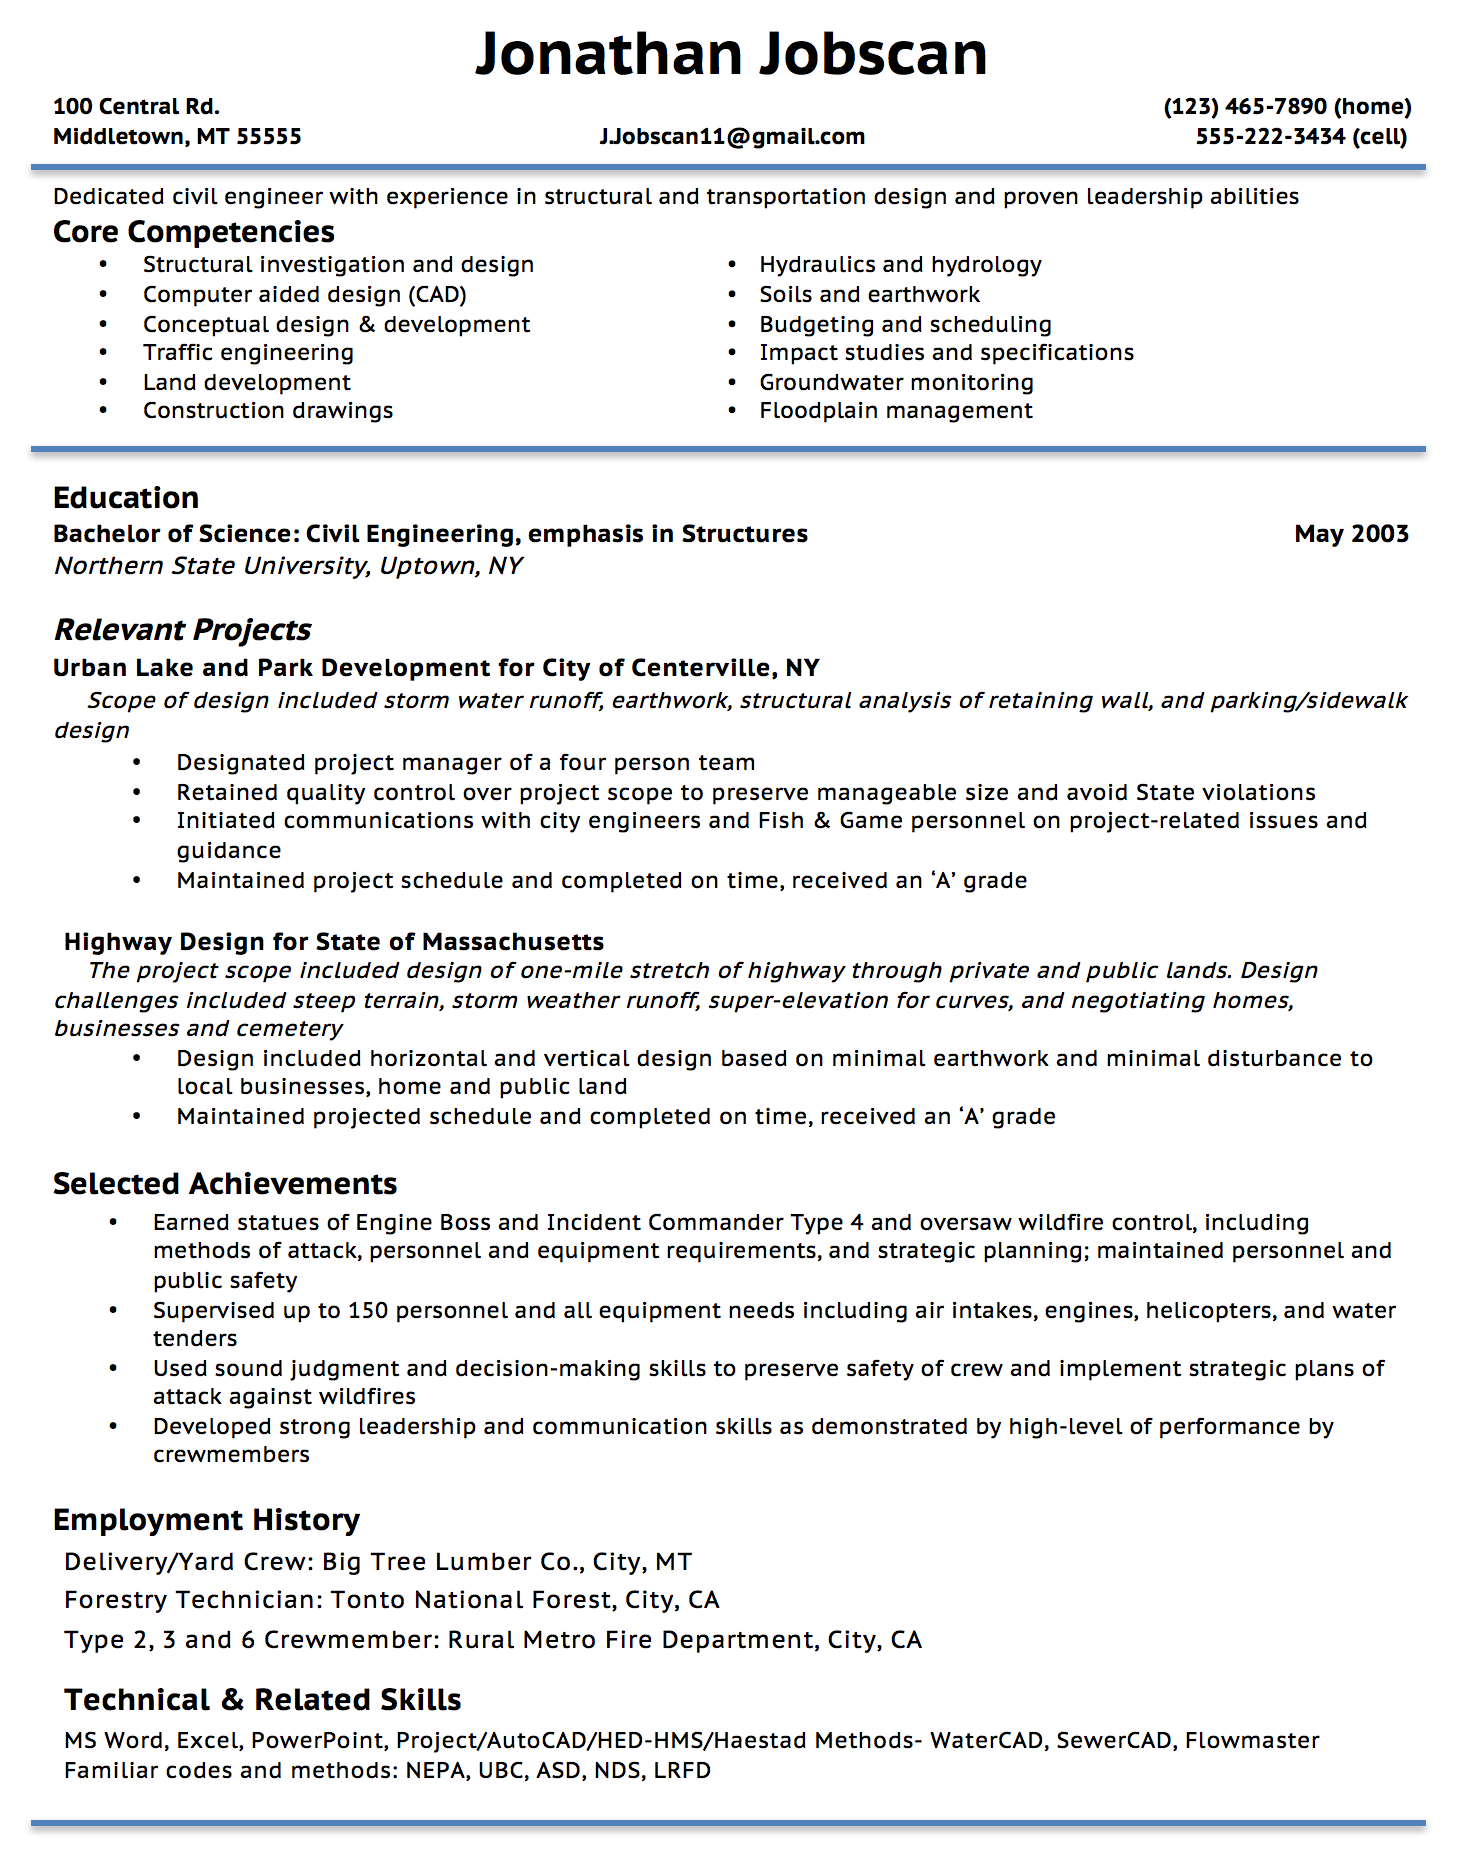 Opposenewapstandardsus  Pleasant Resume Writing Guide  Jobscan With Exquisite Example Of A Functional Resume Format With Lovely Computer Skills On Resume Also Software Developer Resume In Addition Good Skills To Put On Resume And Resume Templet As Well As It Resume Examples Additionally Customer Service Skills For Resume From Jobscanco With Opposenewapstandardsus  Exquisite Resume Writing Guide  Jobscan With Lovely Example Of A Functional Resume Format And Pleasant Computer Skills On Resume Also Software Developer Resume In Addition Good Skills To Put On Resume From Jobscanco